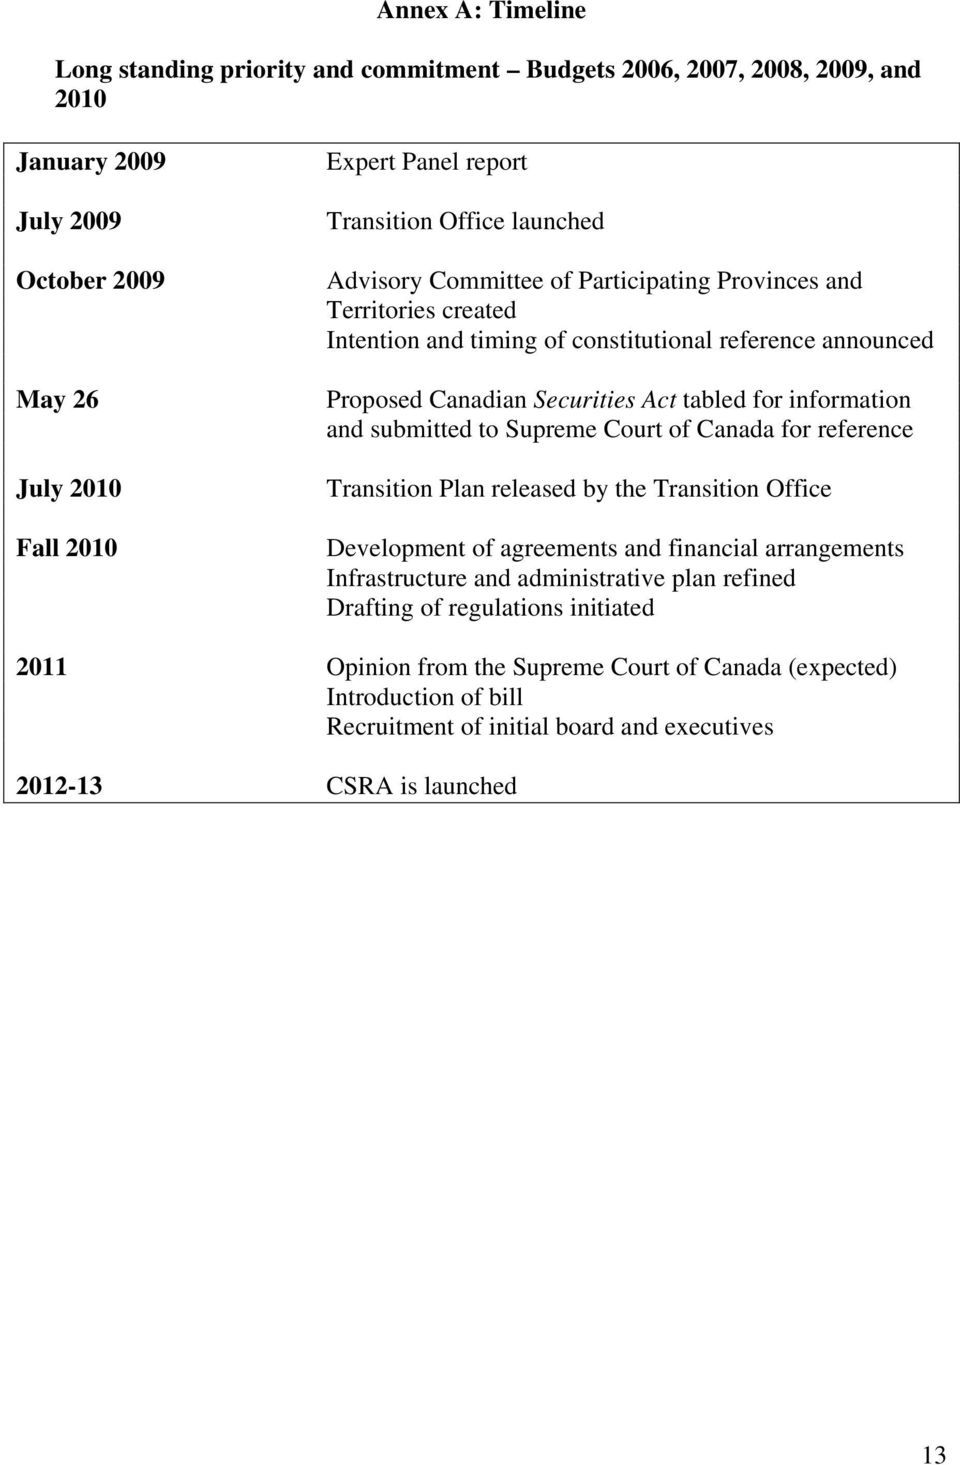 information and submitted to Supreme Court of Canada for reference Transition Plan released by the Transition Office Development of agreements and financial arrangements Infrastructure and